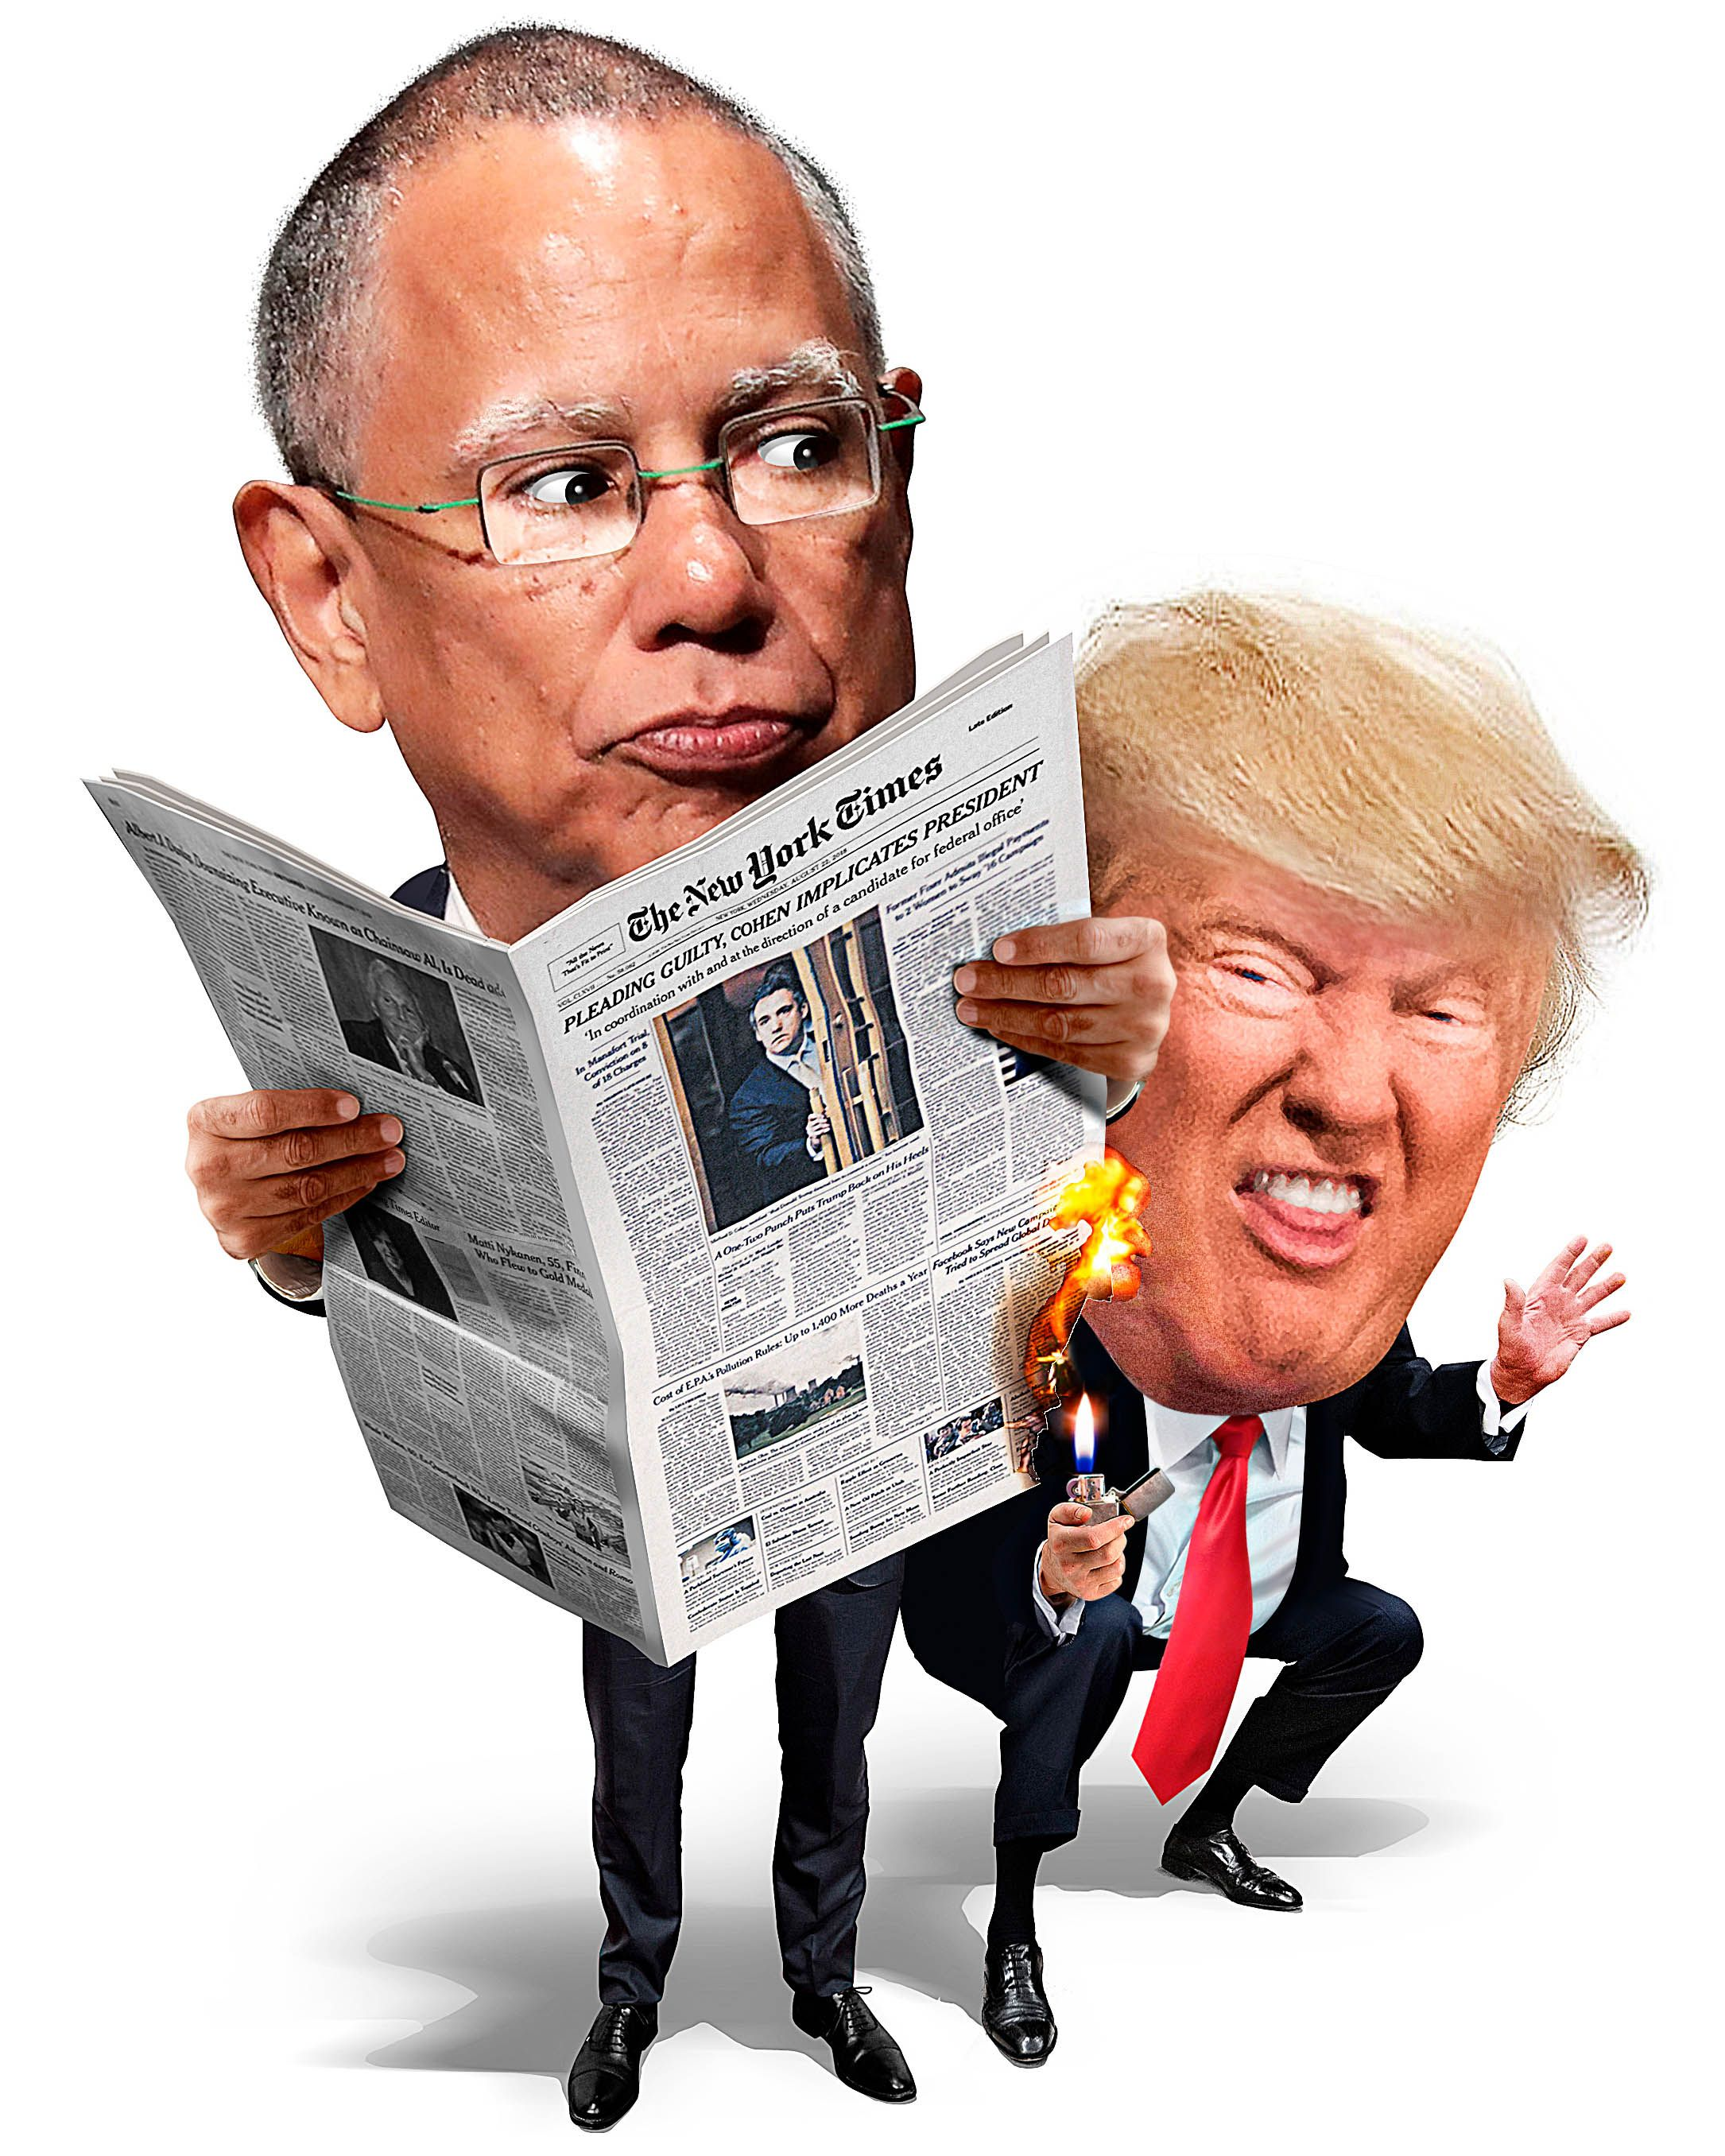 New York Times executive editor Dean Baquet and an unaverage reader.